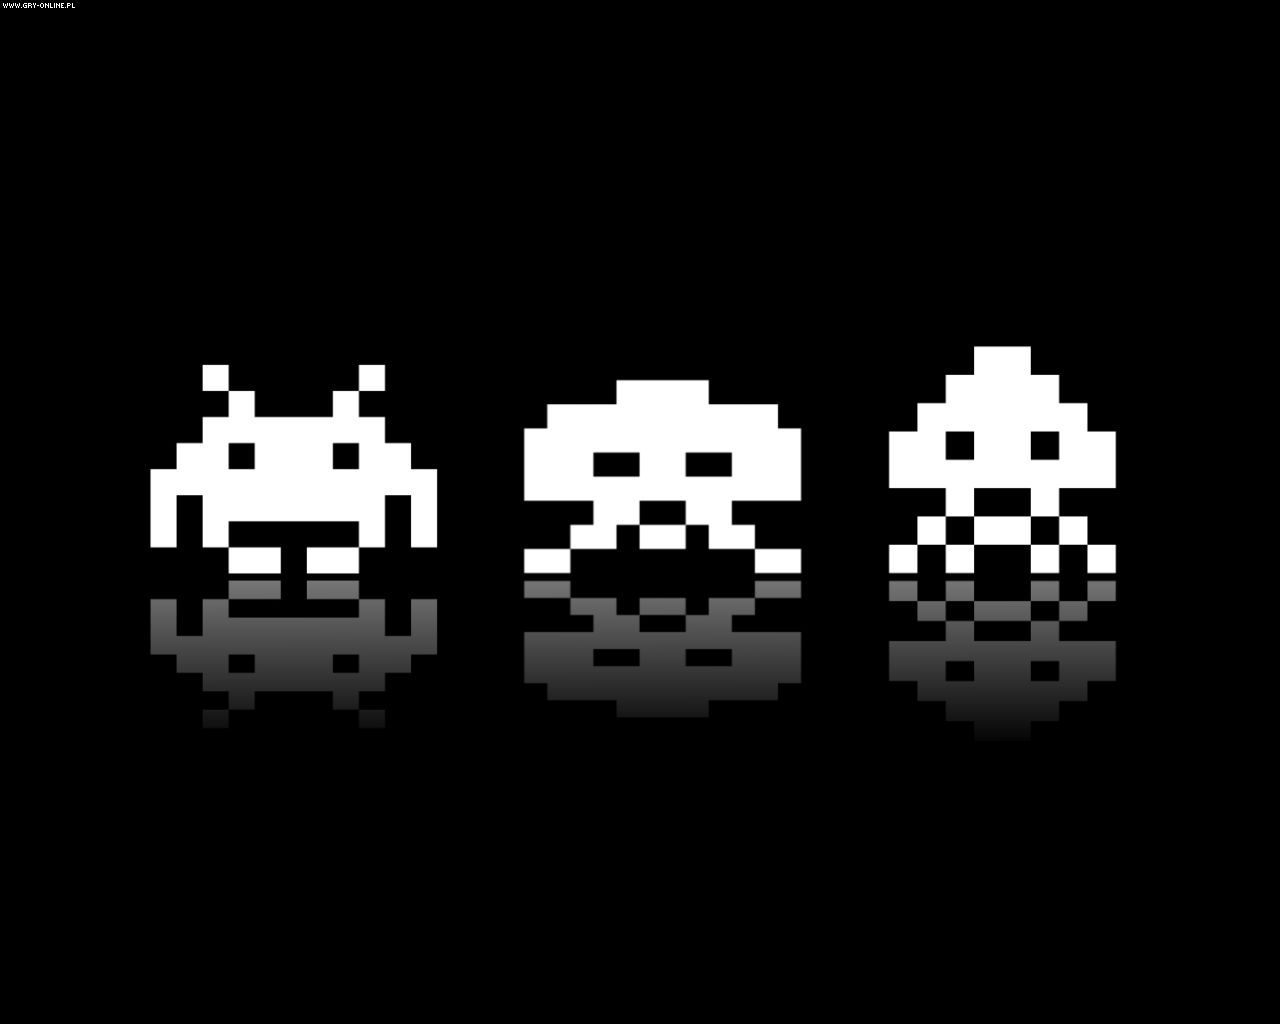 spacer invaders